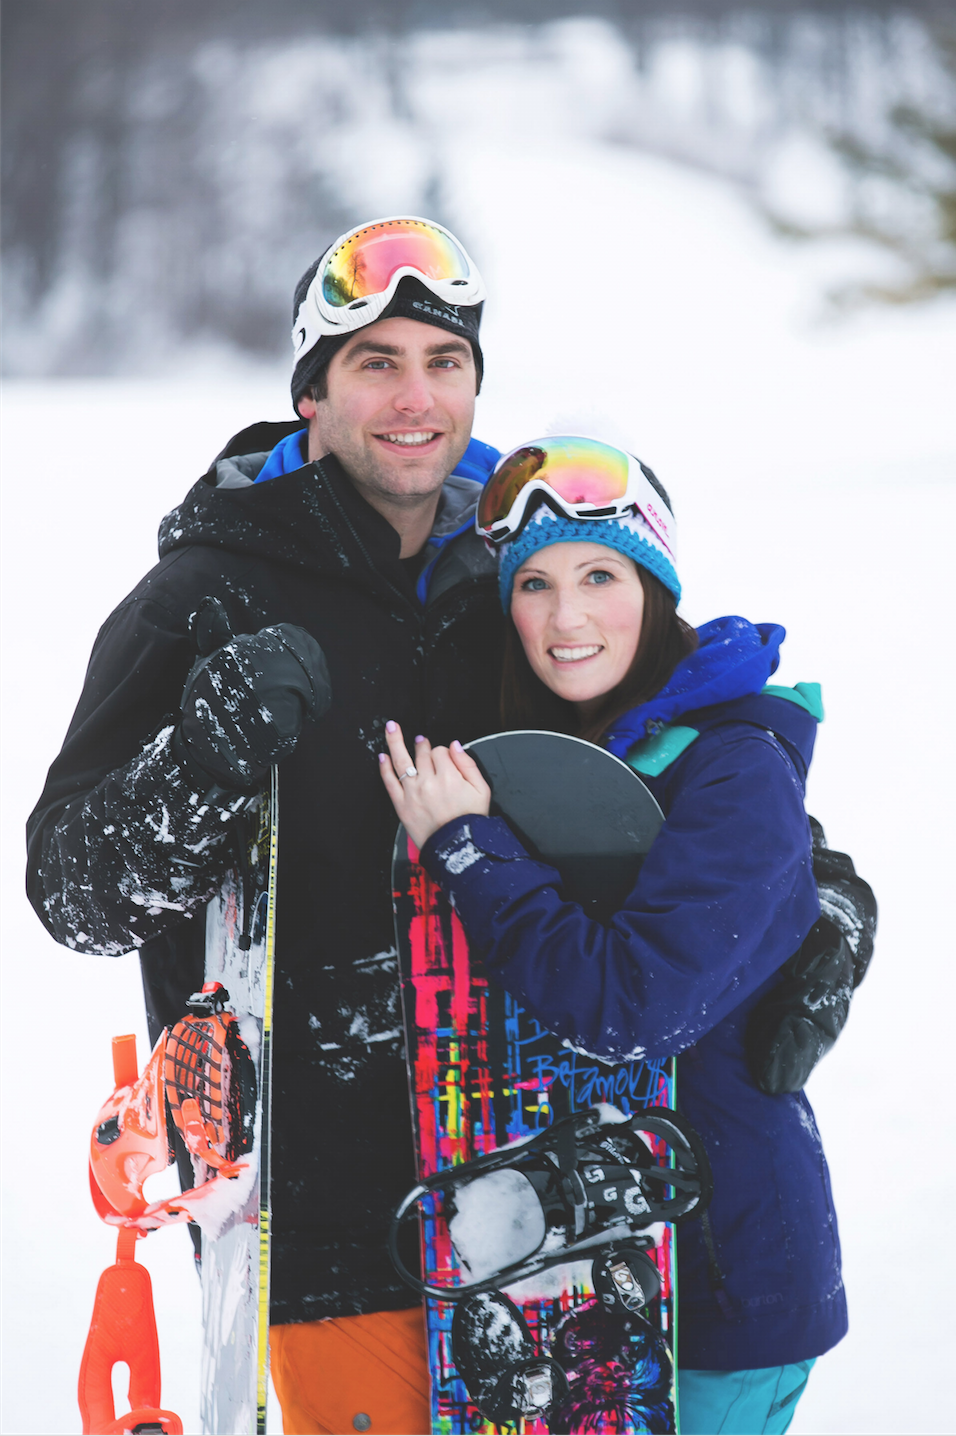 Engagement-Photos-Hamilton-Niagara-Toronto-Burlington-Oakville-Photographer-Engaged-Ring-Photography-Snowboarding-Winter-Moments-by-Lauren-Image-23.png